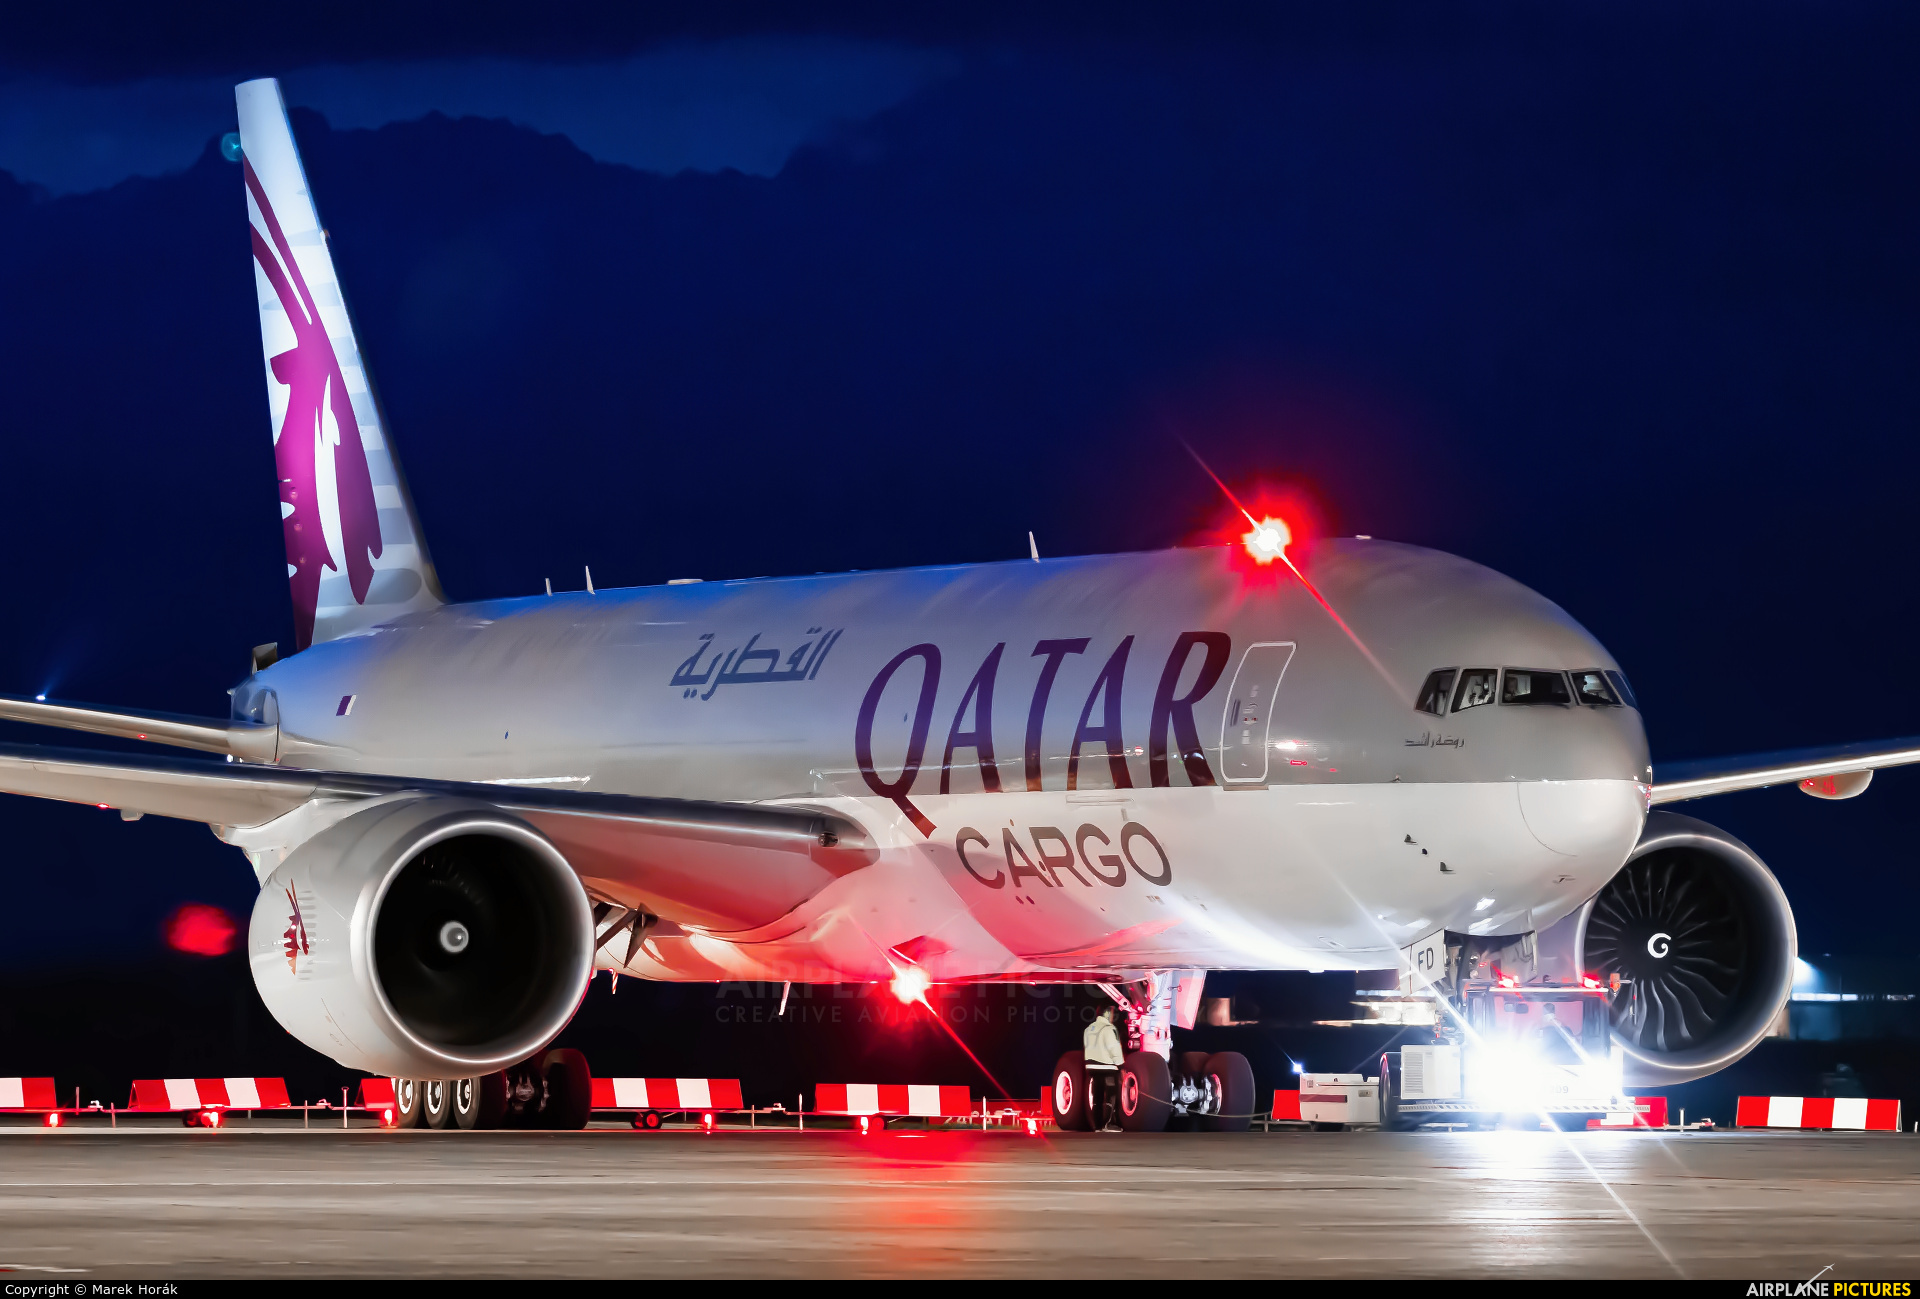 Qatar Airways Cargo A7-BFD aircraft at Prague - Václav Havel